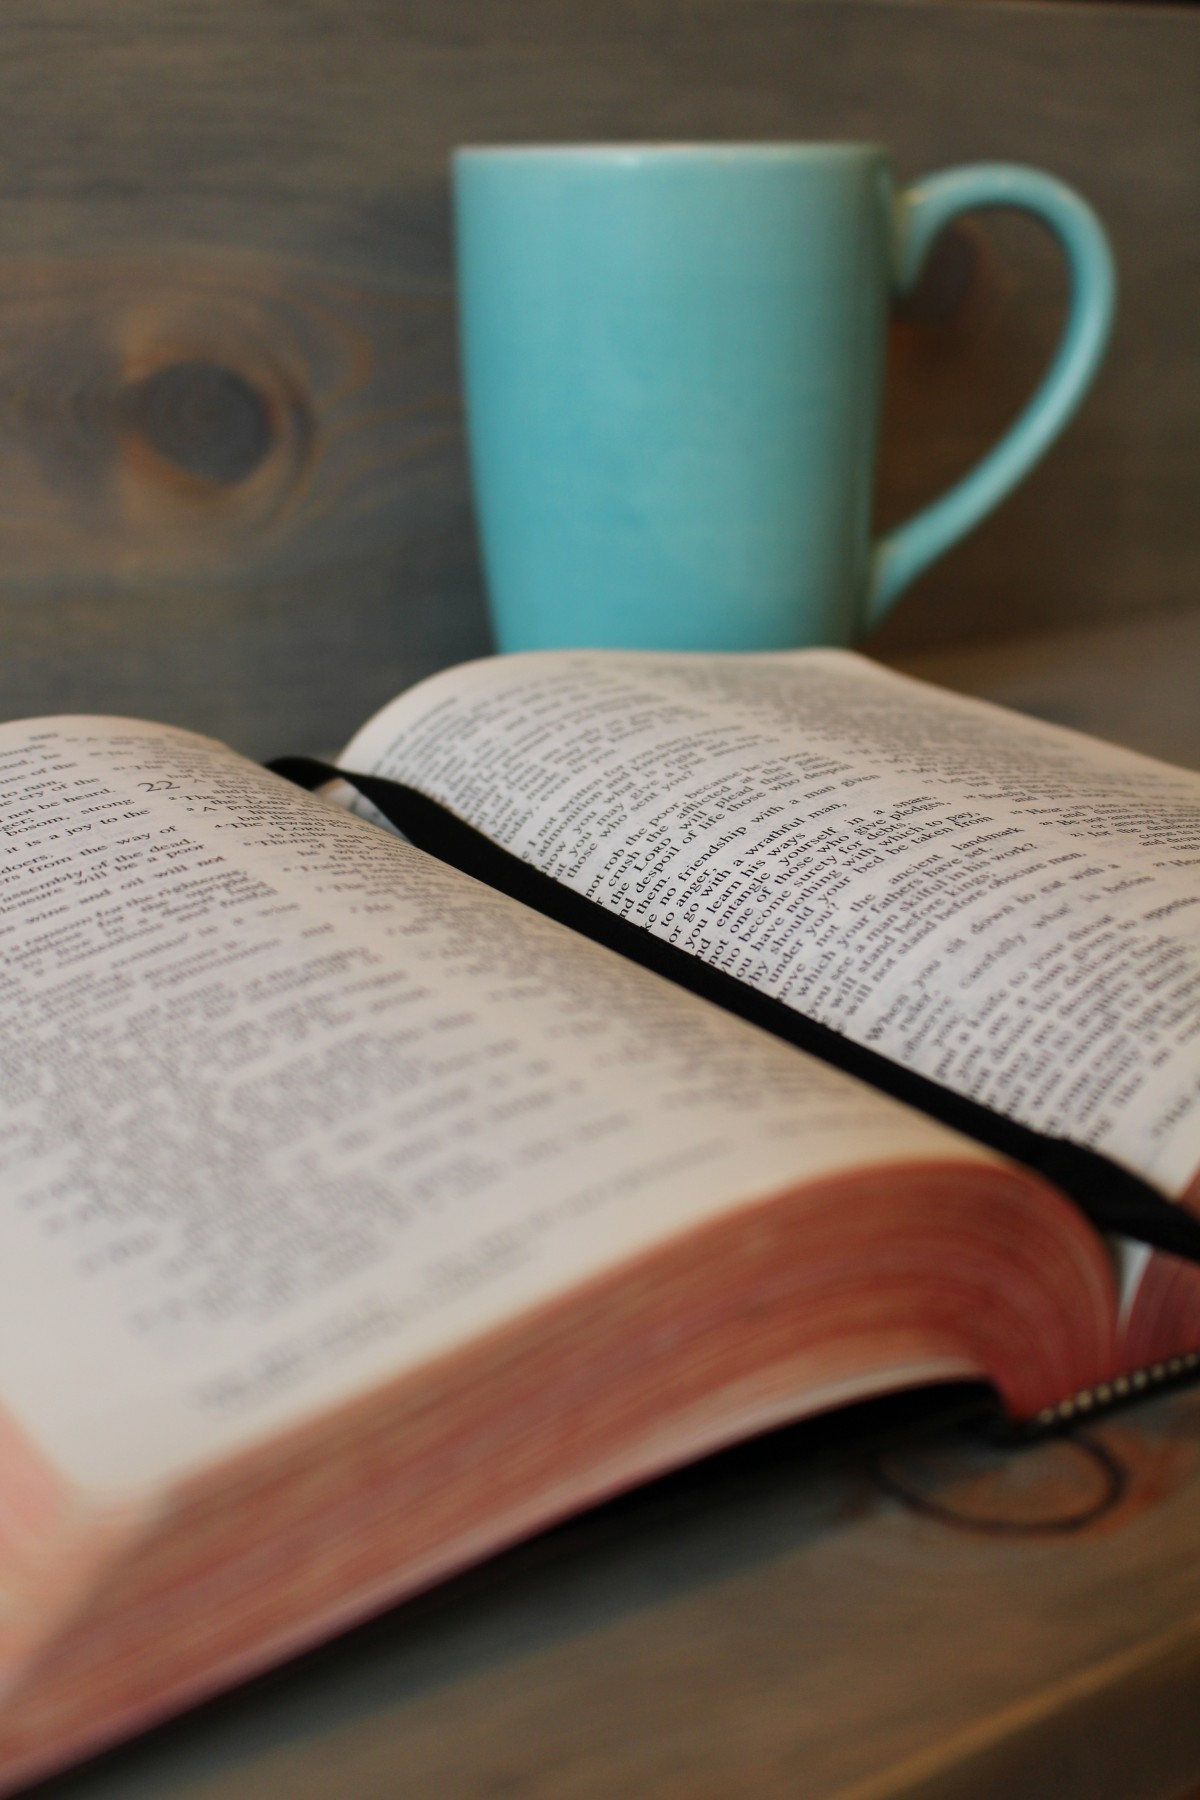 bible_study_coffee_cup_religion_christianity_christian_reading-863751.jpg